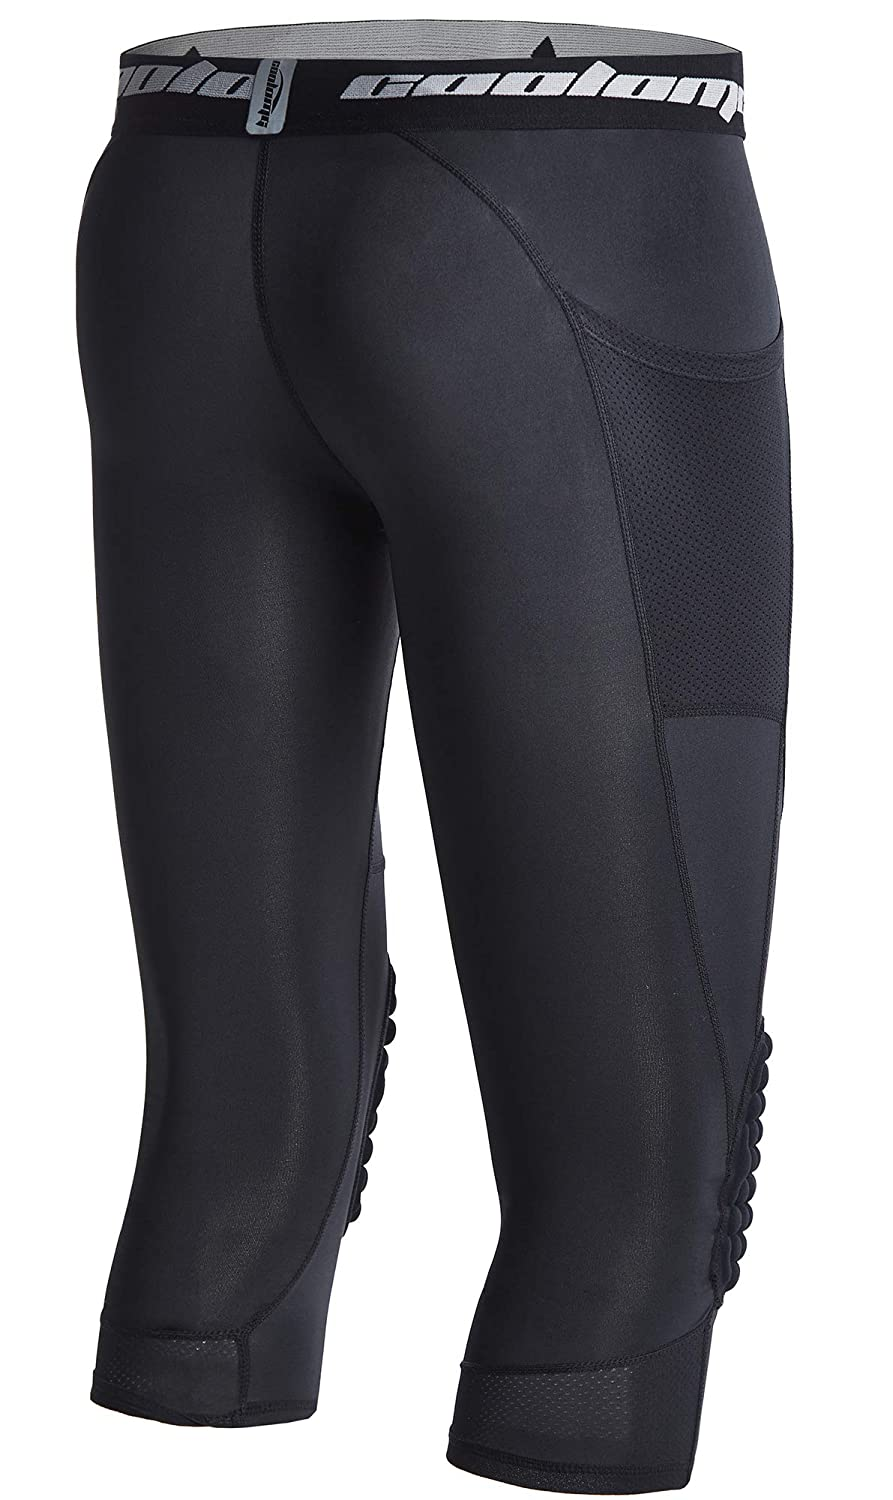 606c66b42c967 Amazon.com : COOLOMG Basketball Pants with Knee Pads for Kids 3/4 Capri  Compression Tights Leggings : Sports & Outdoors